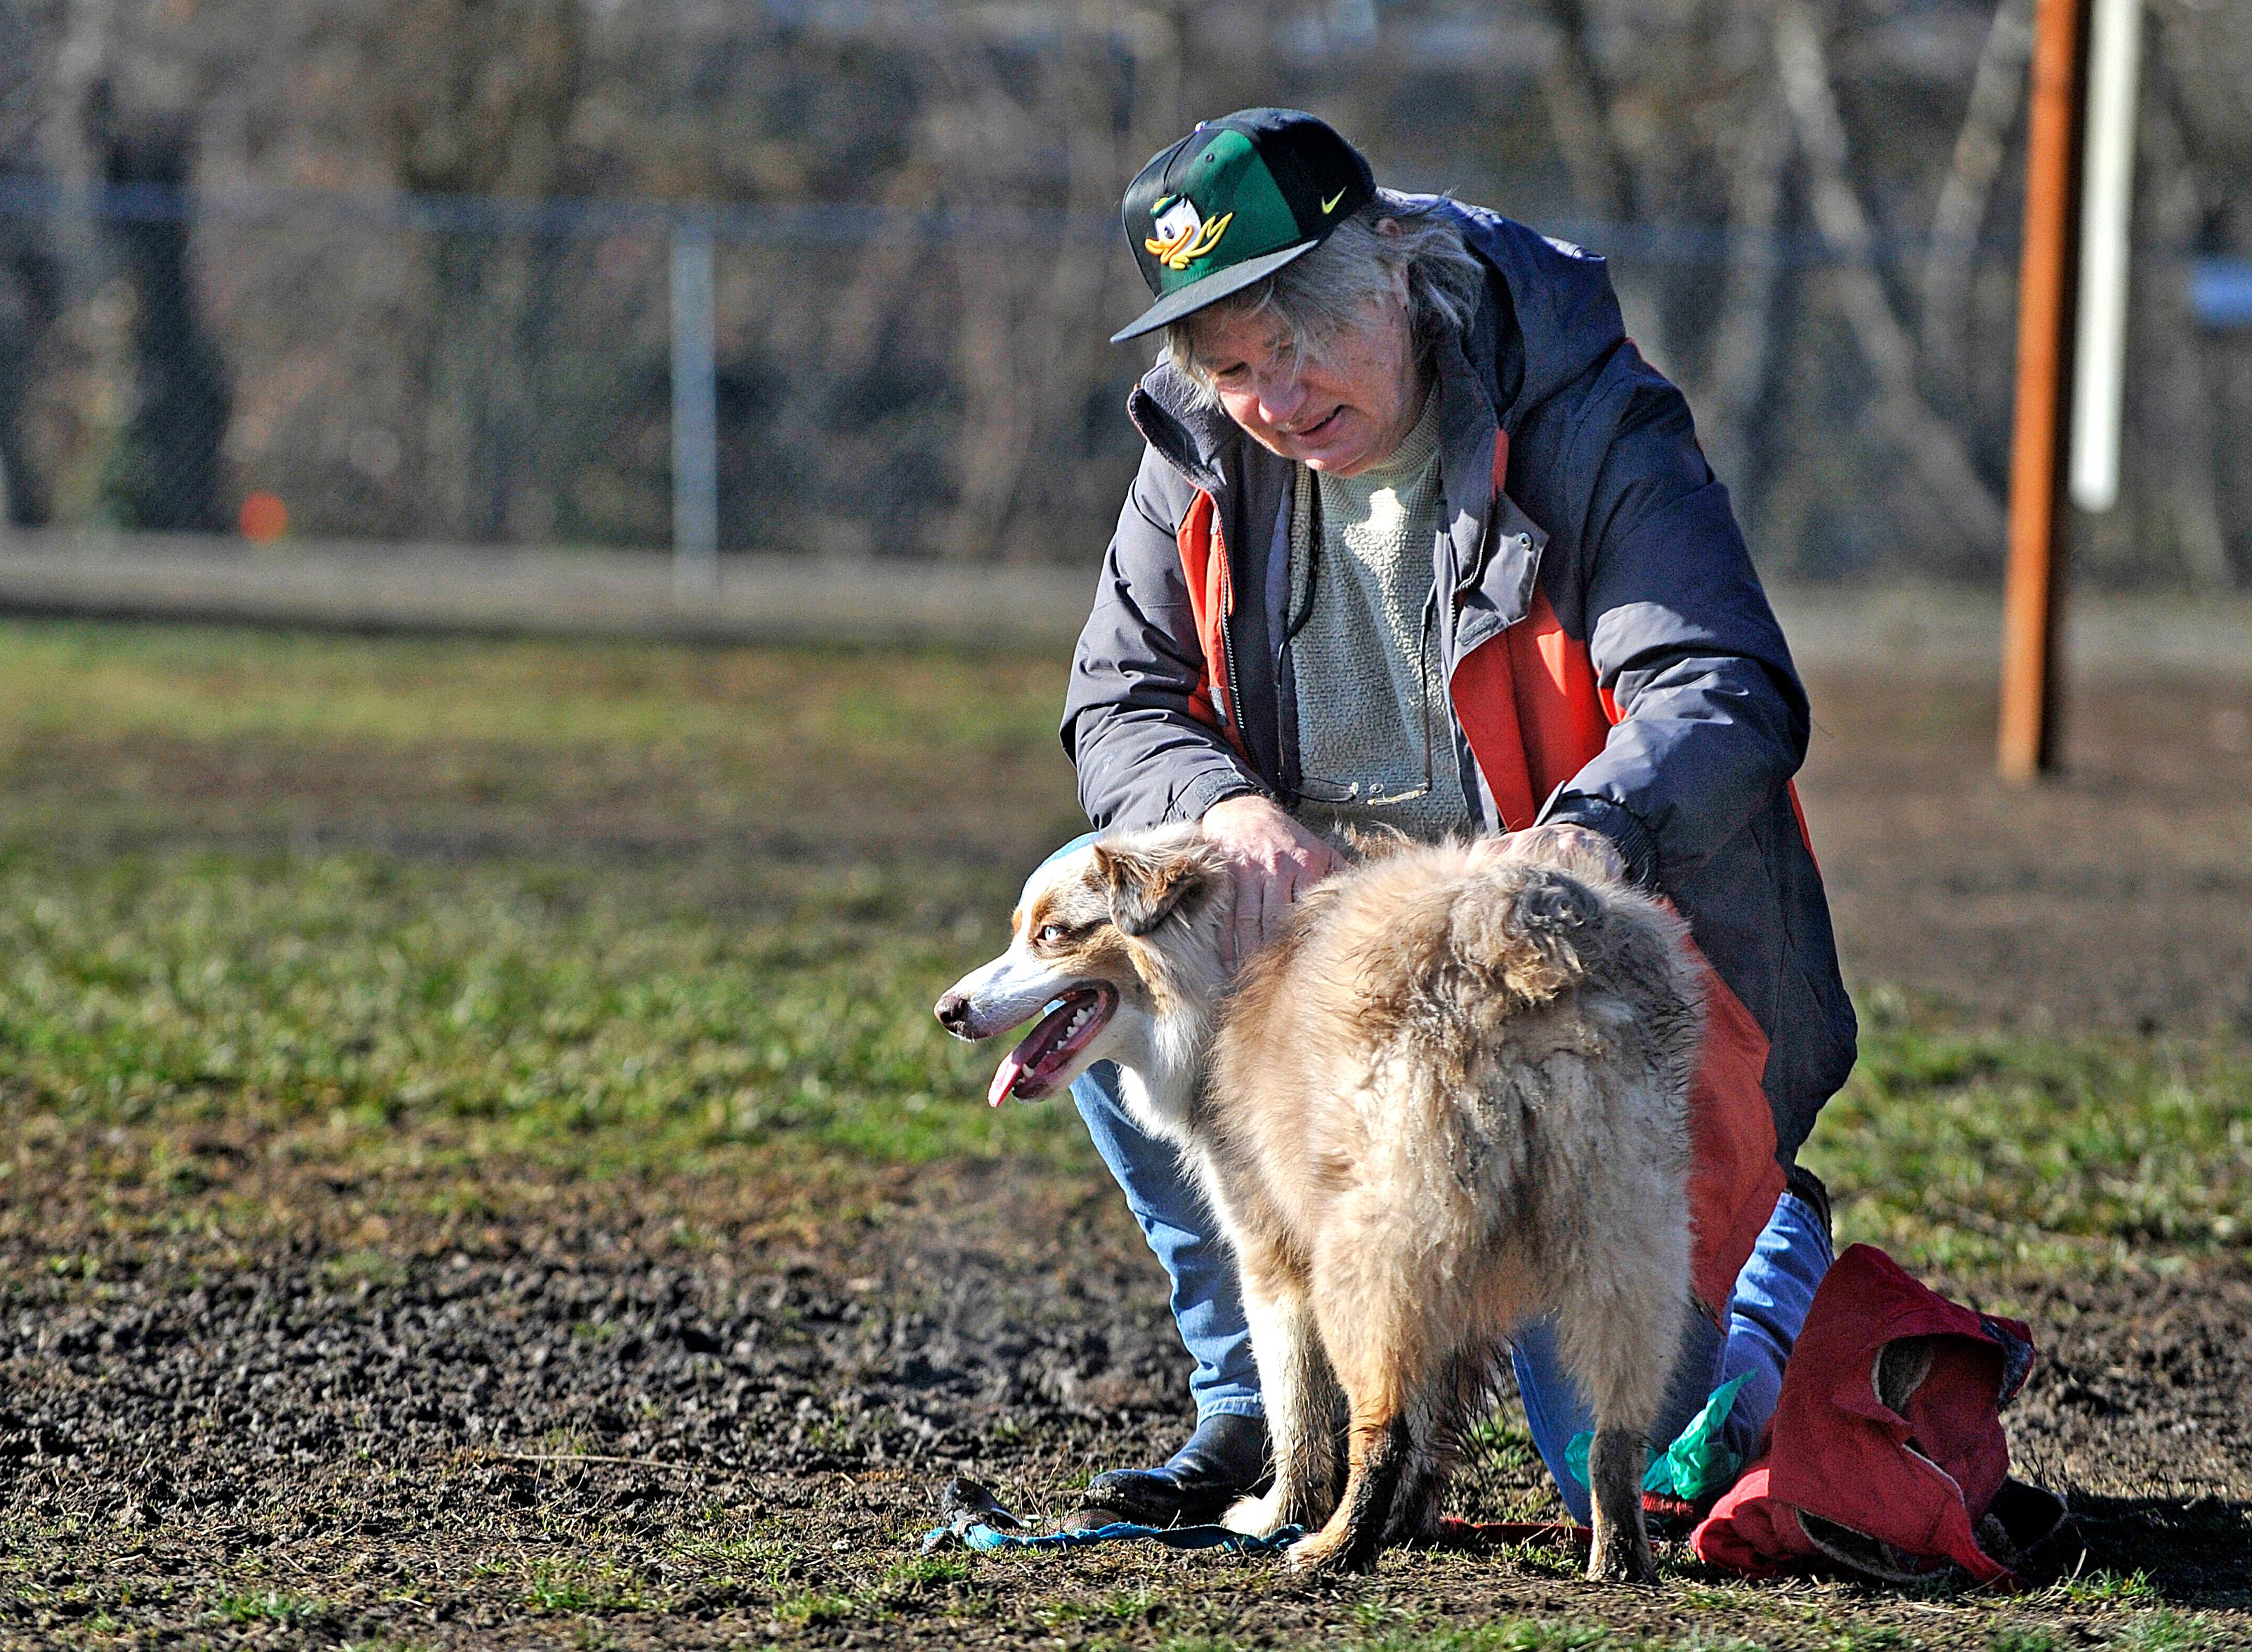 Tyler Henry shares a moment with dog Zoey at the Bear Creek dog park in Medford on Wednesday. Jamie Lusch / Mail Tribune